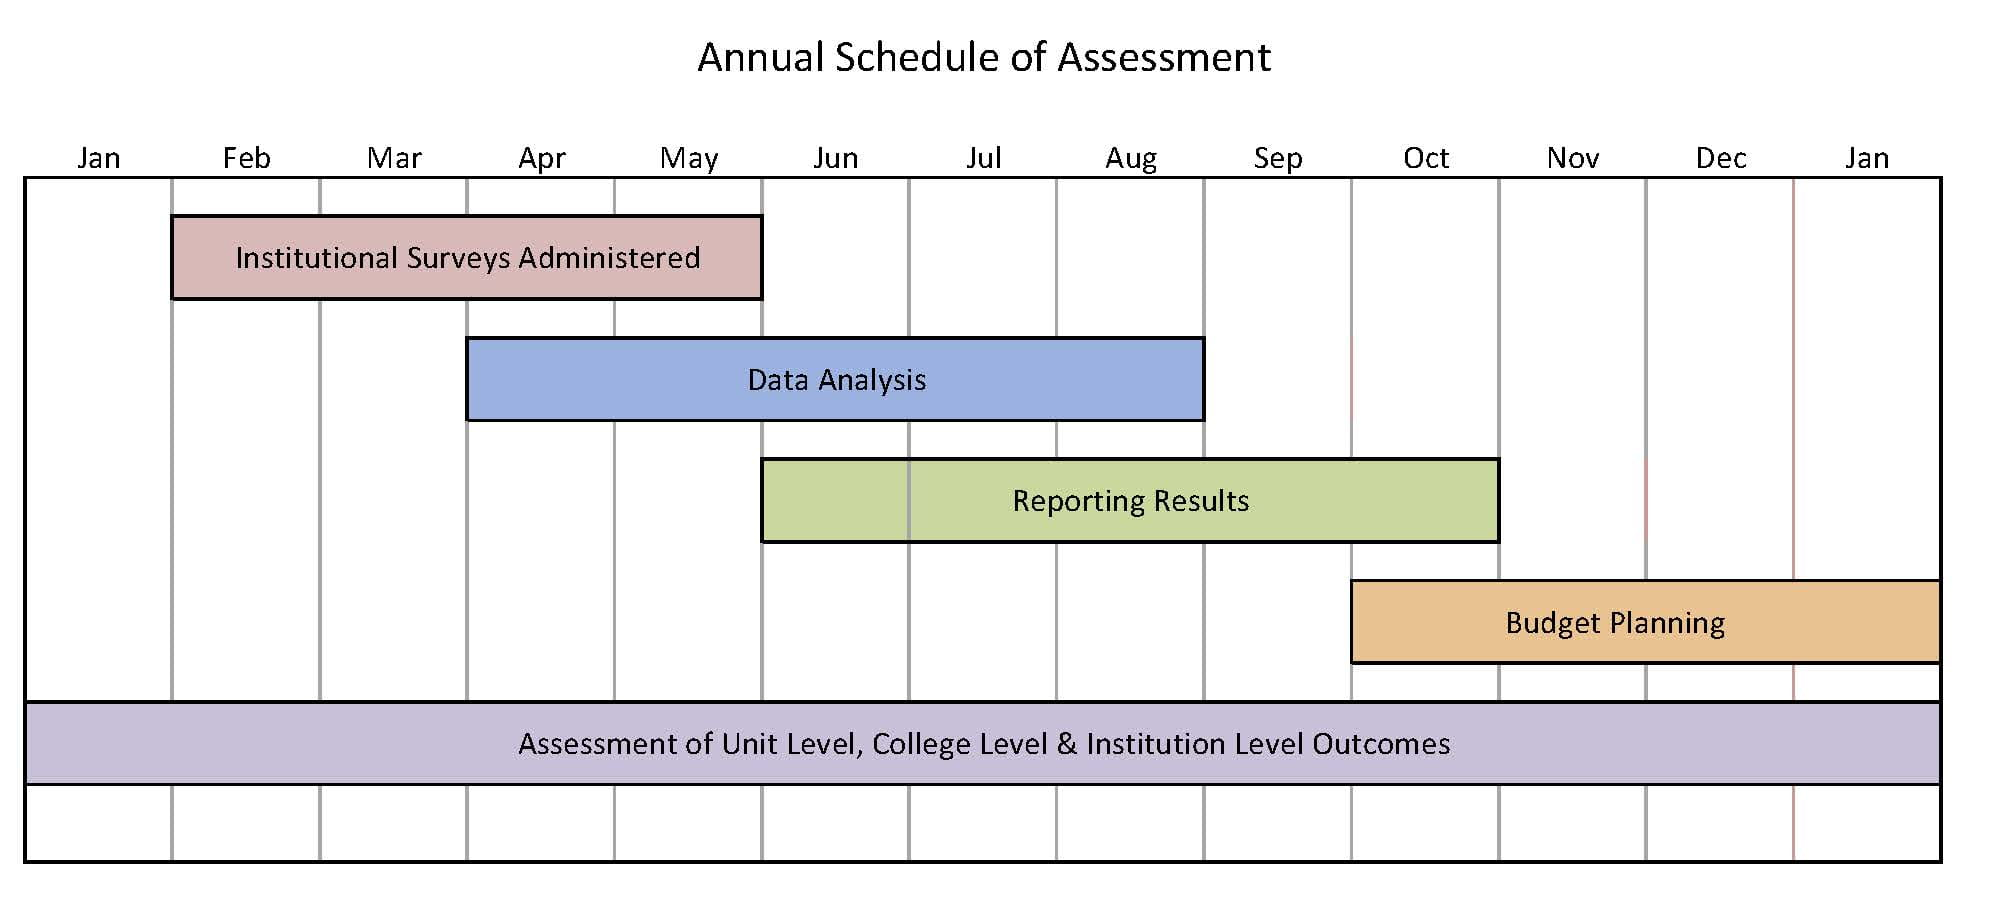 Image shows the annual assessment schedule